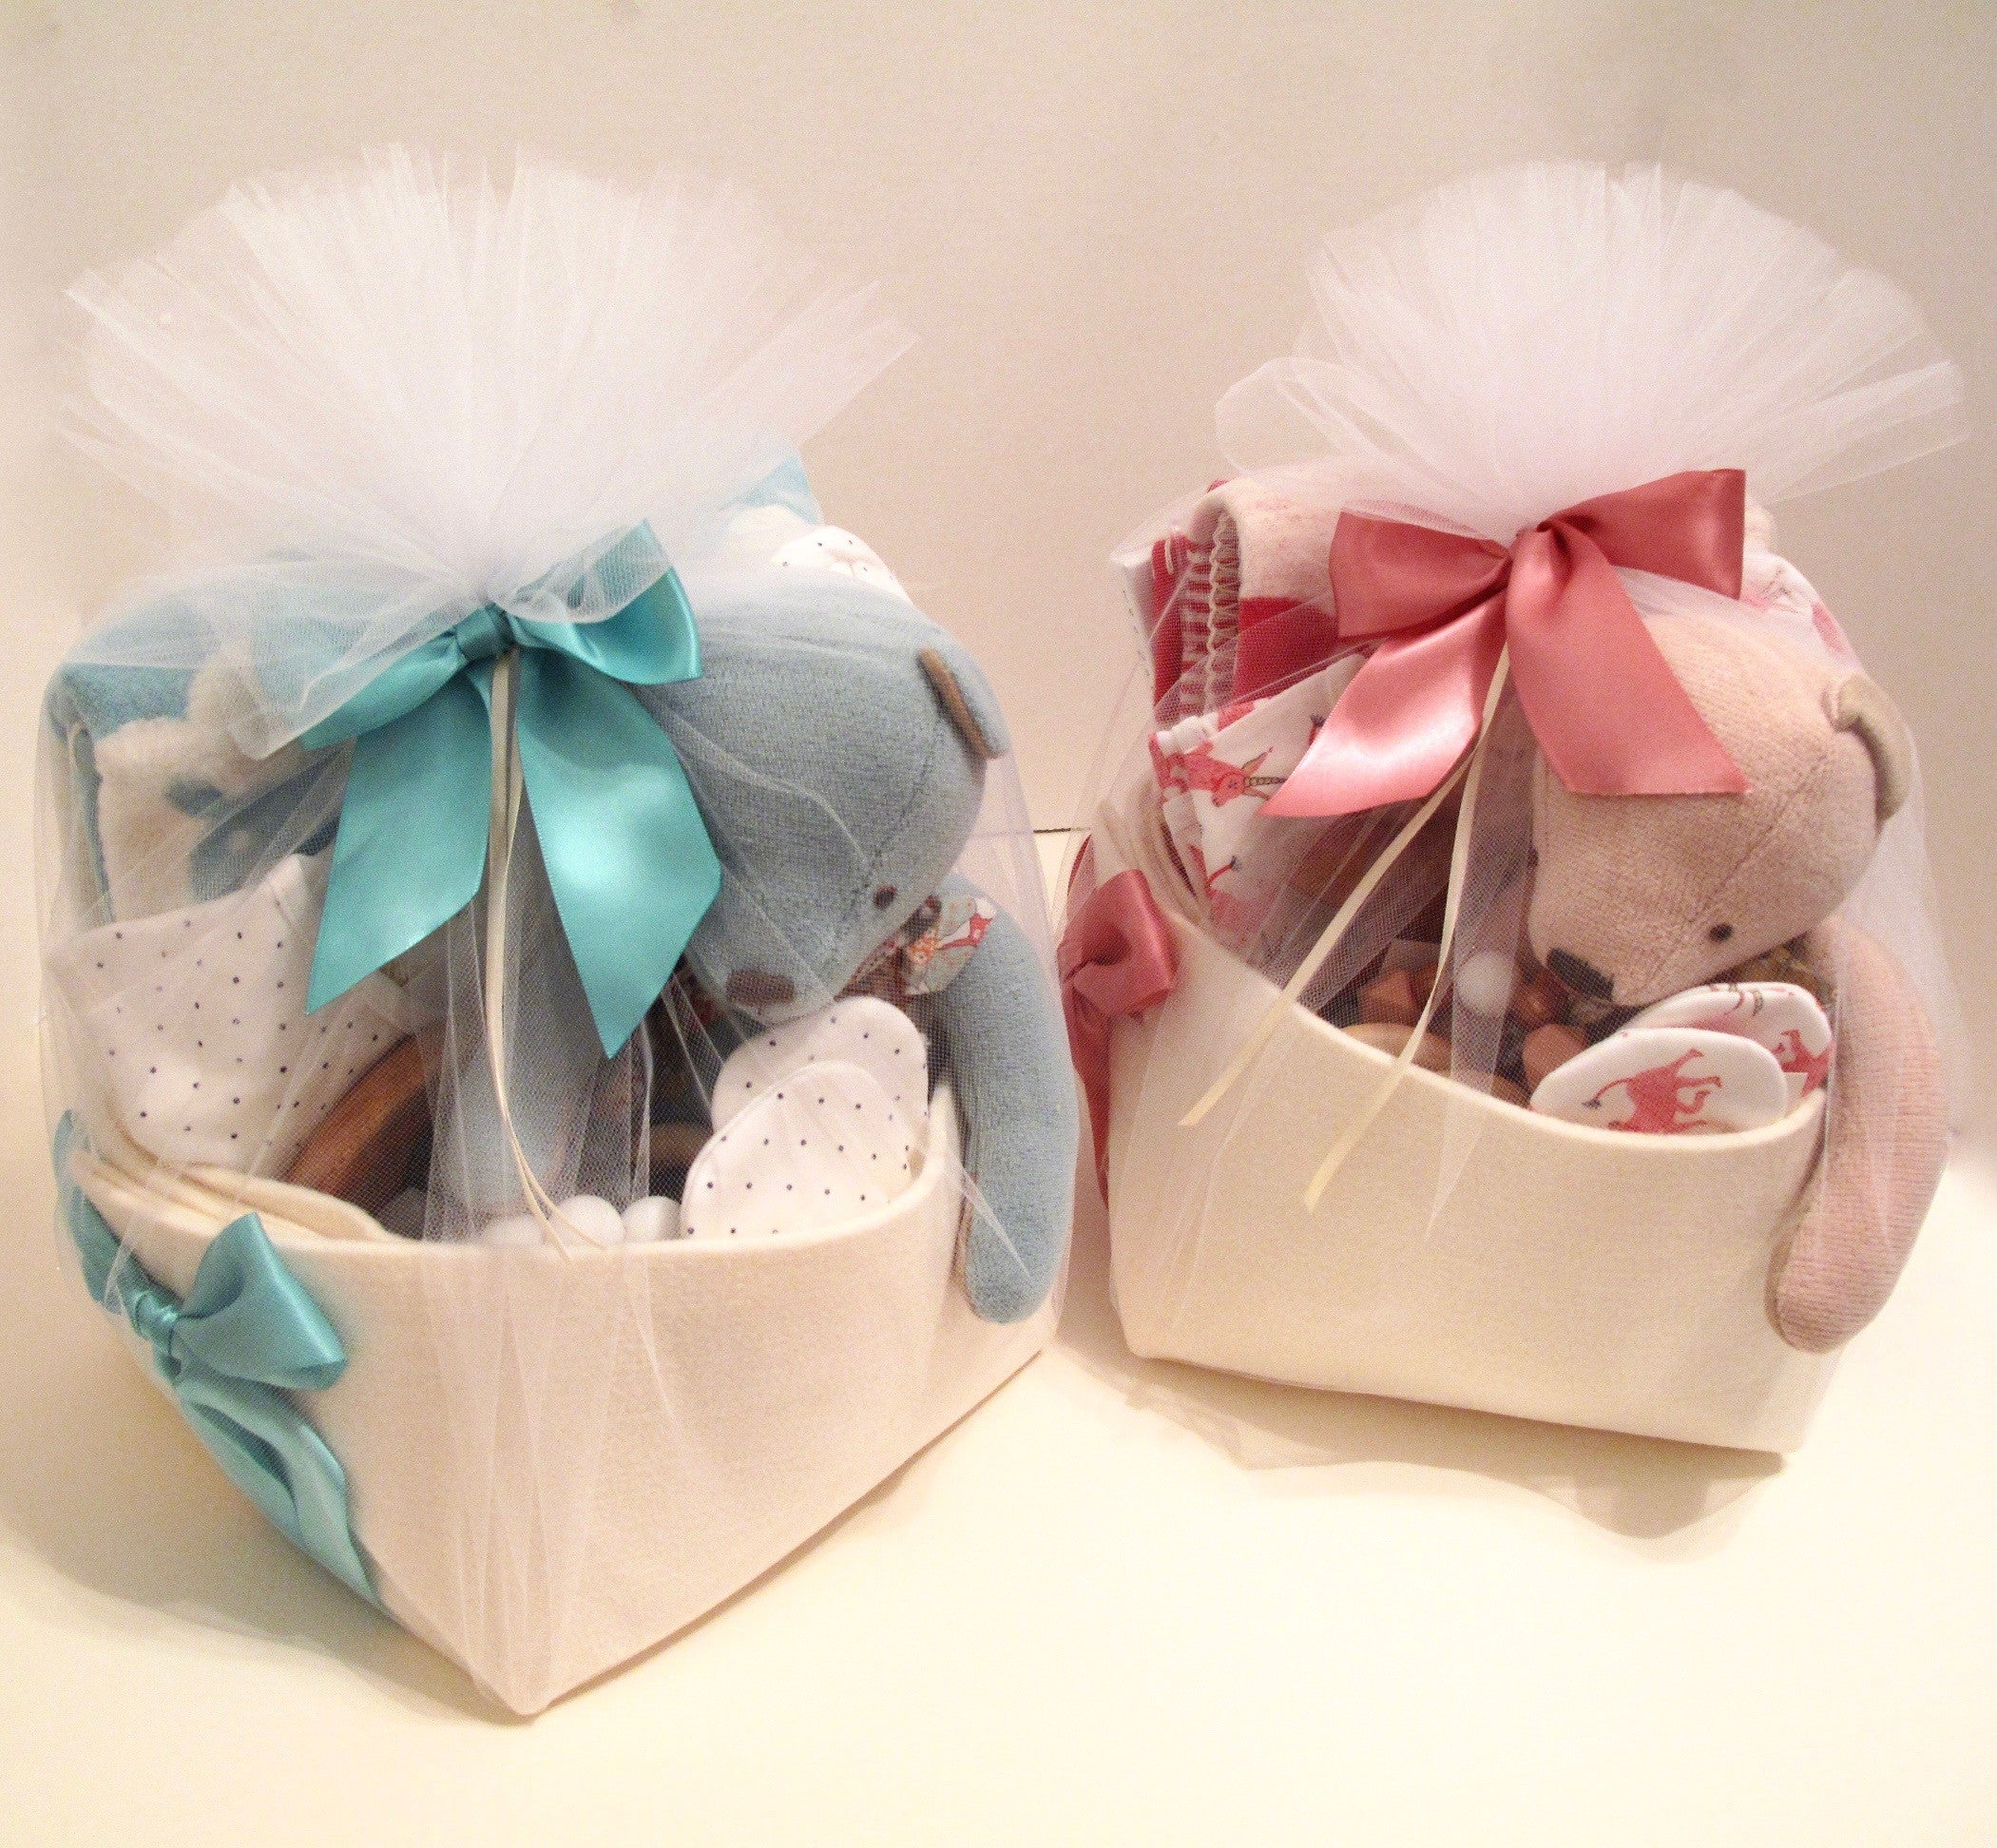 BYOB (Build Your Own Baskets) for Twins Custom Made by Bonjour Baby Baskets